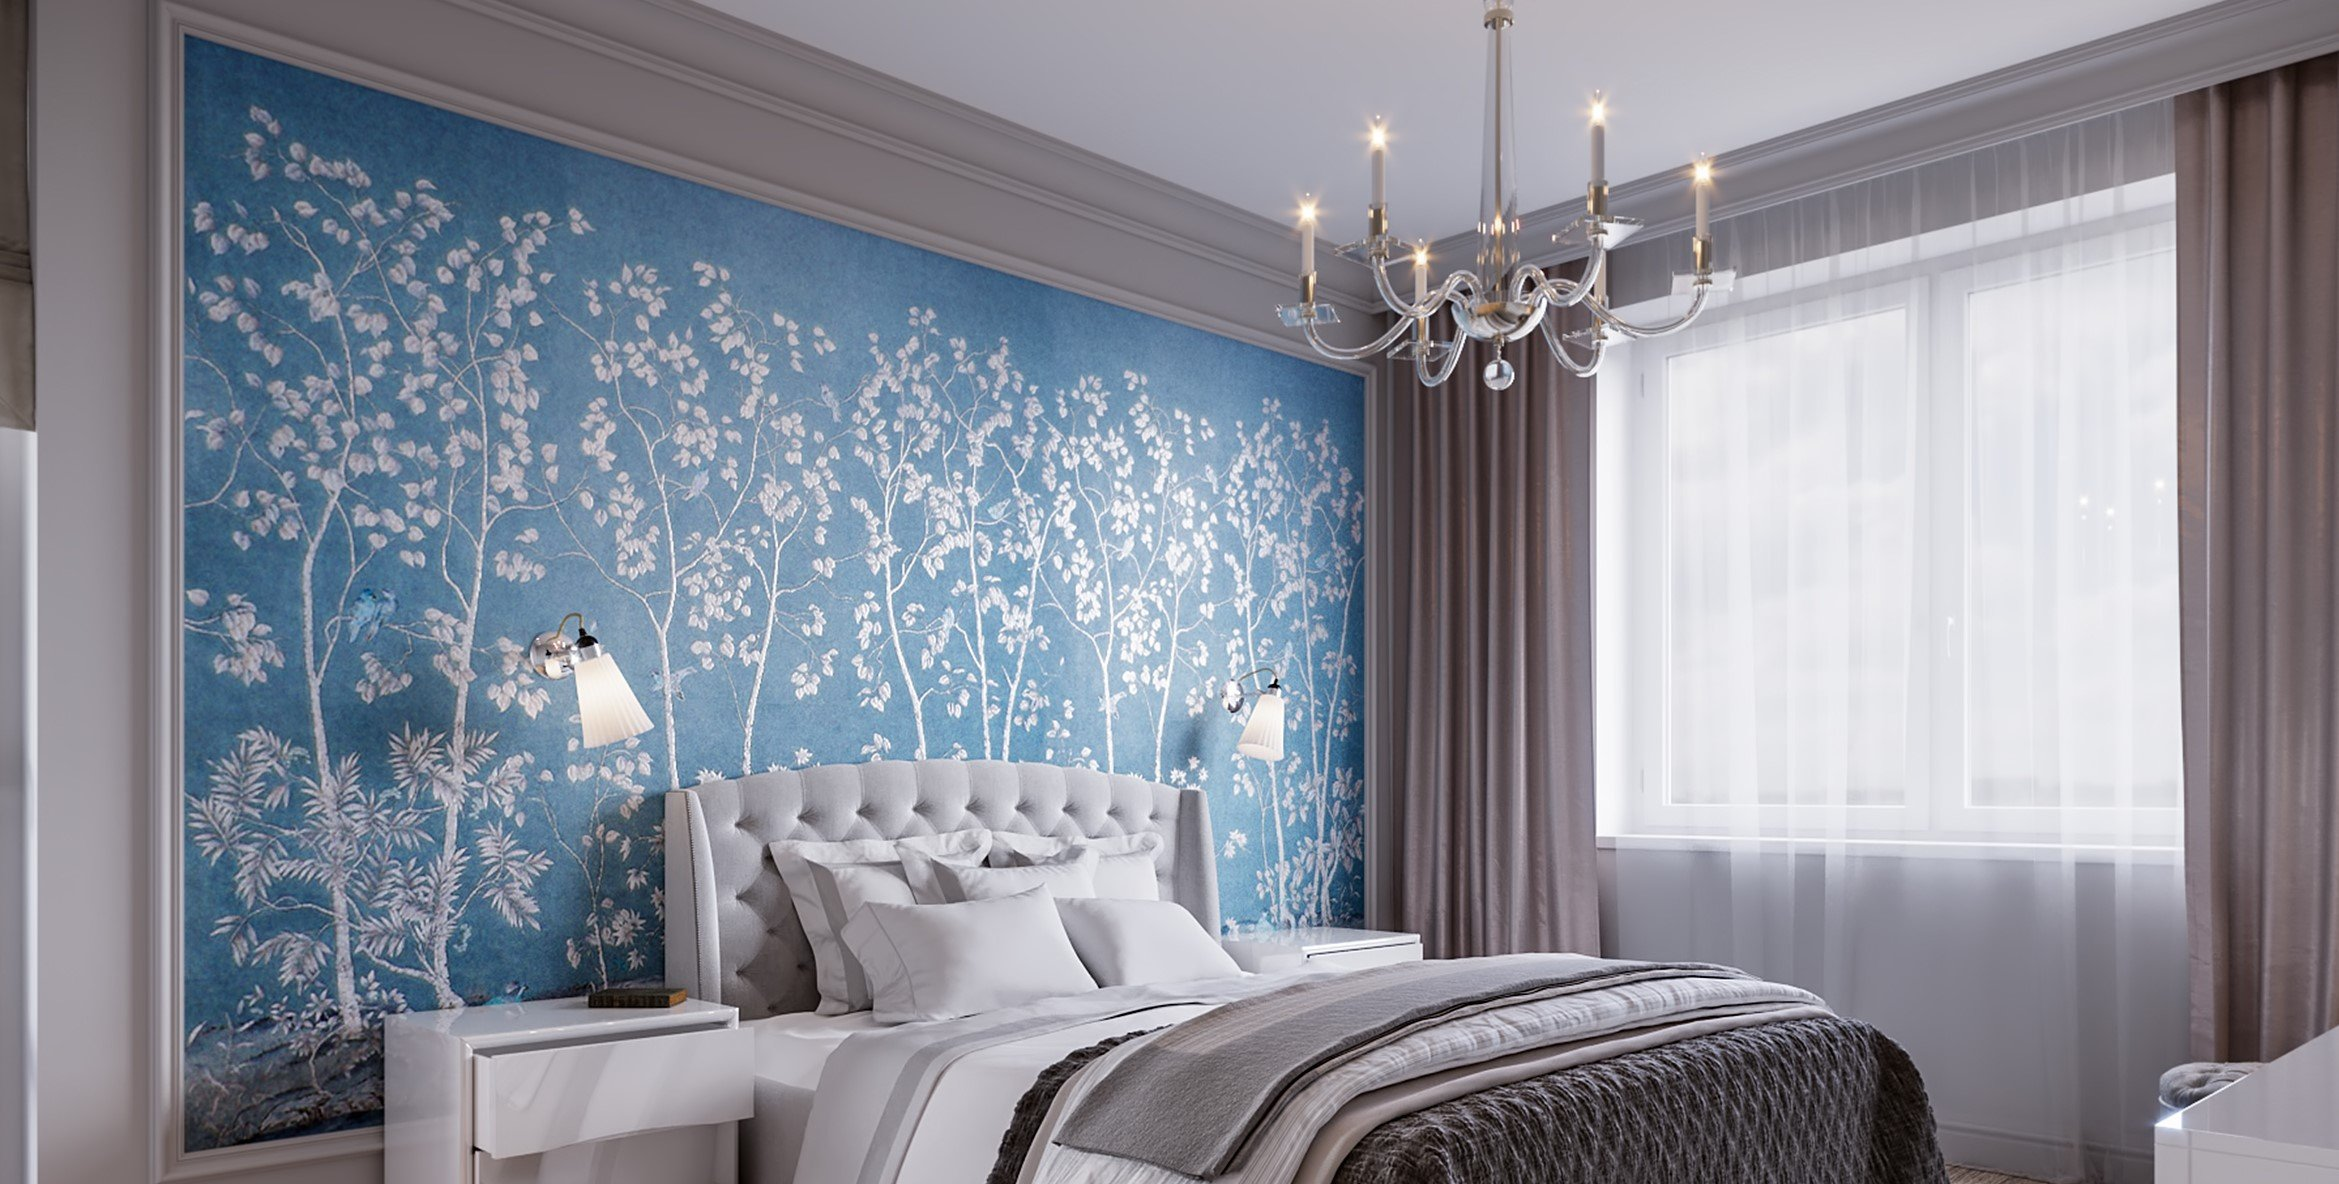 Wallpaper Borders For Bedrooms. Wall Border Buying Guide Amazon com Borders Home Kitchen  wallpaper martinkeeis me 100 Wallpaper For Bedrooms Images